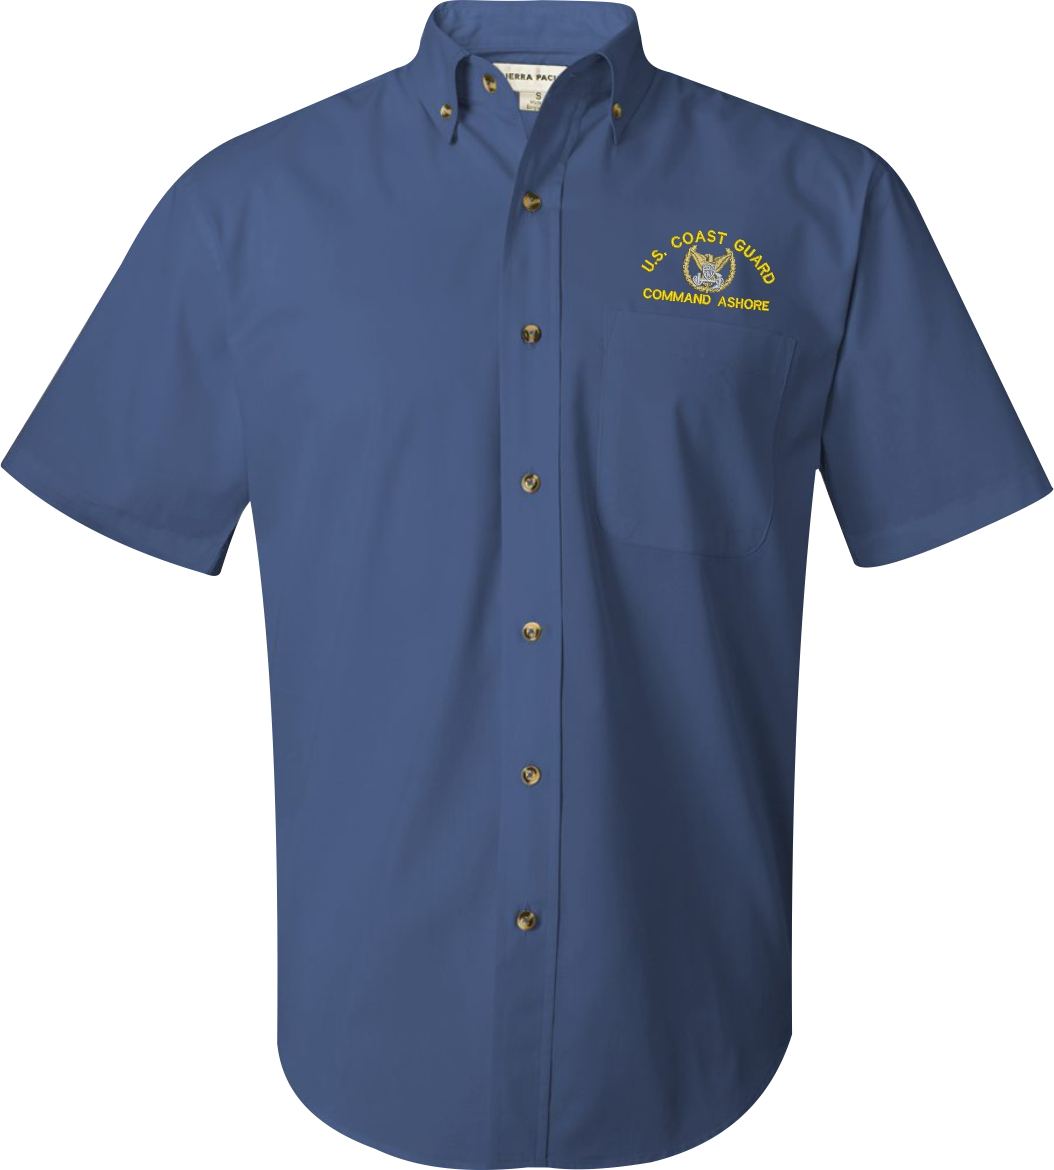 United states coast guard custom embroidered short sleeve for Best short sleeve button down shirts reddit